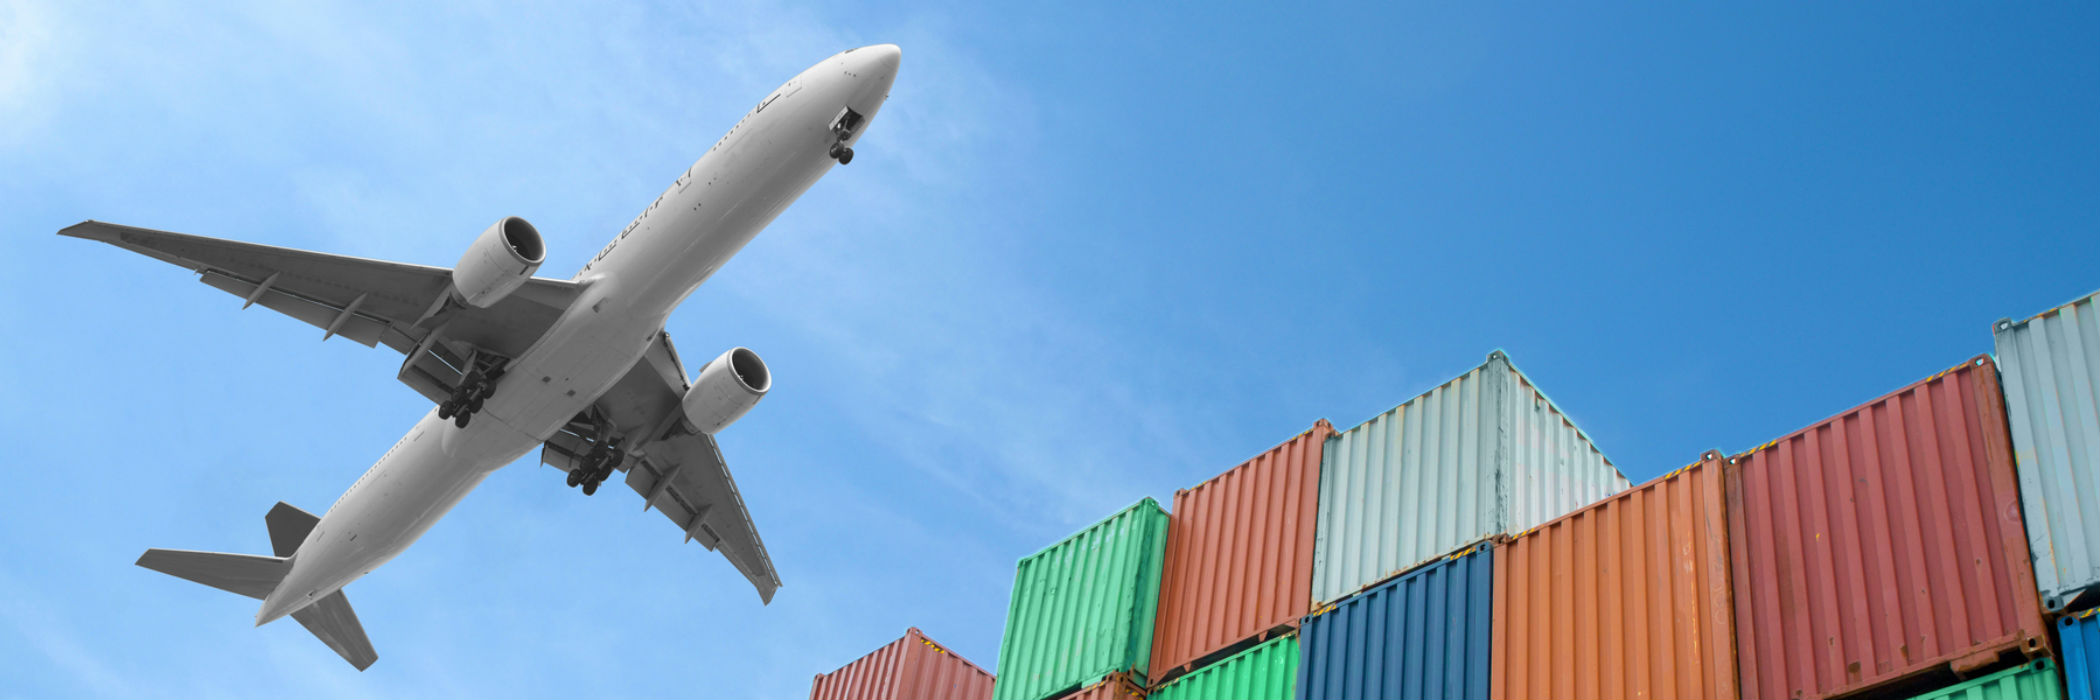 Plane flying over cargo containers